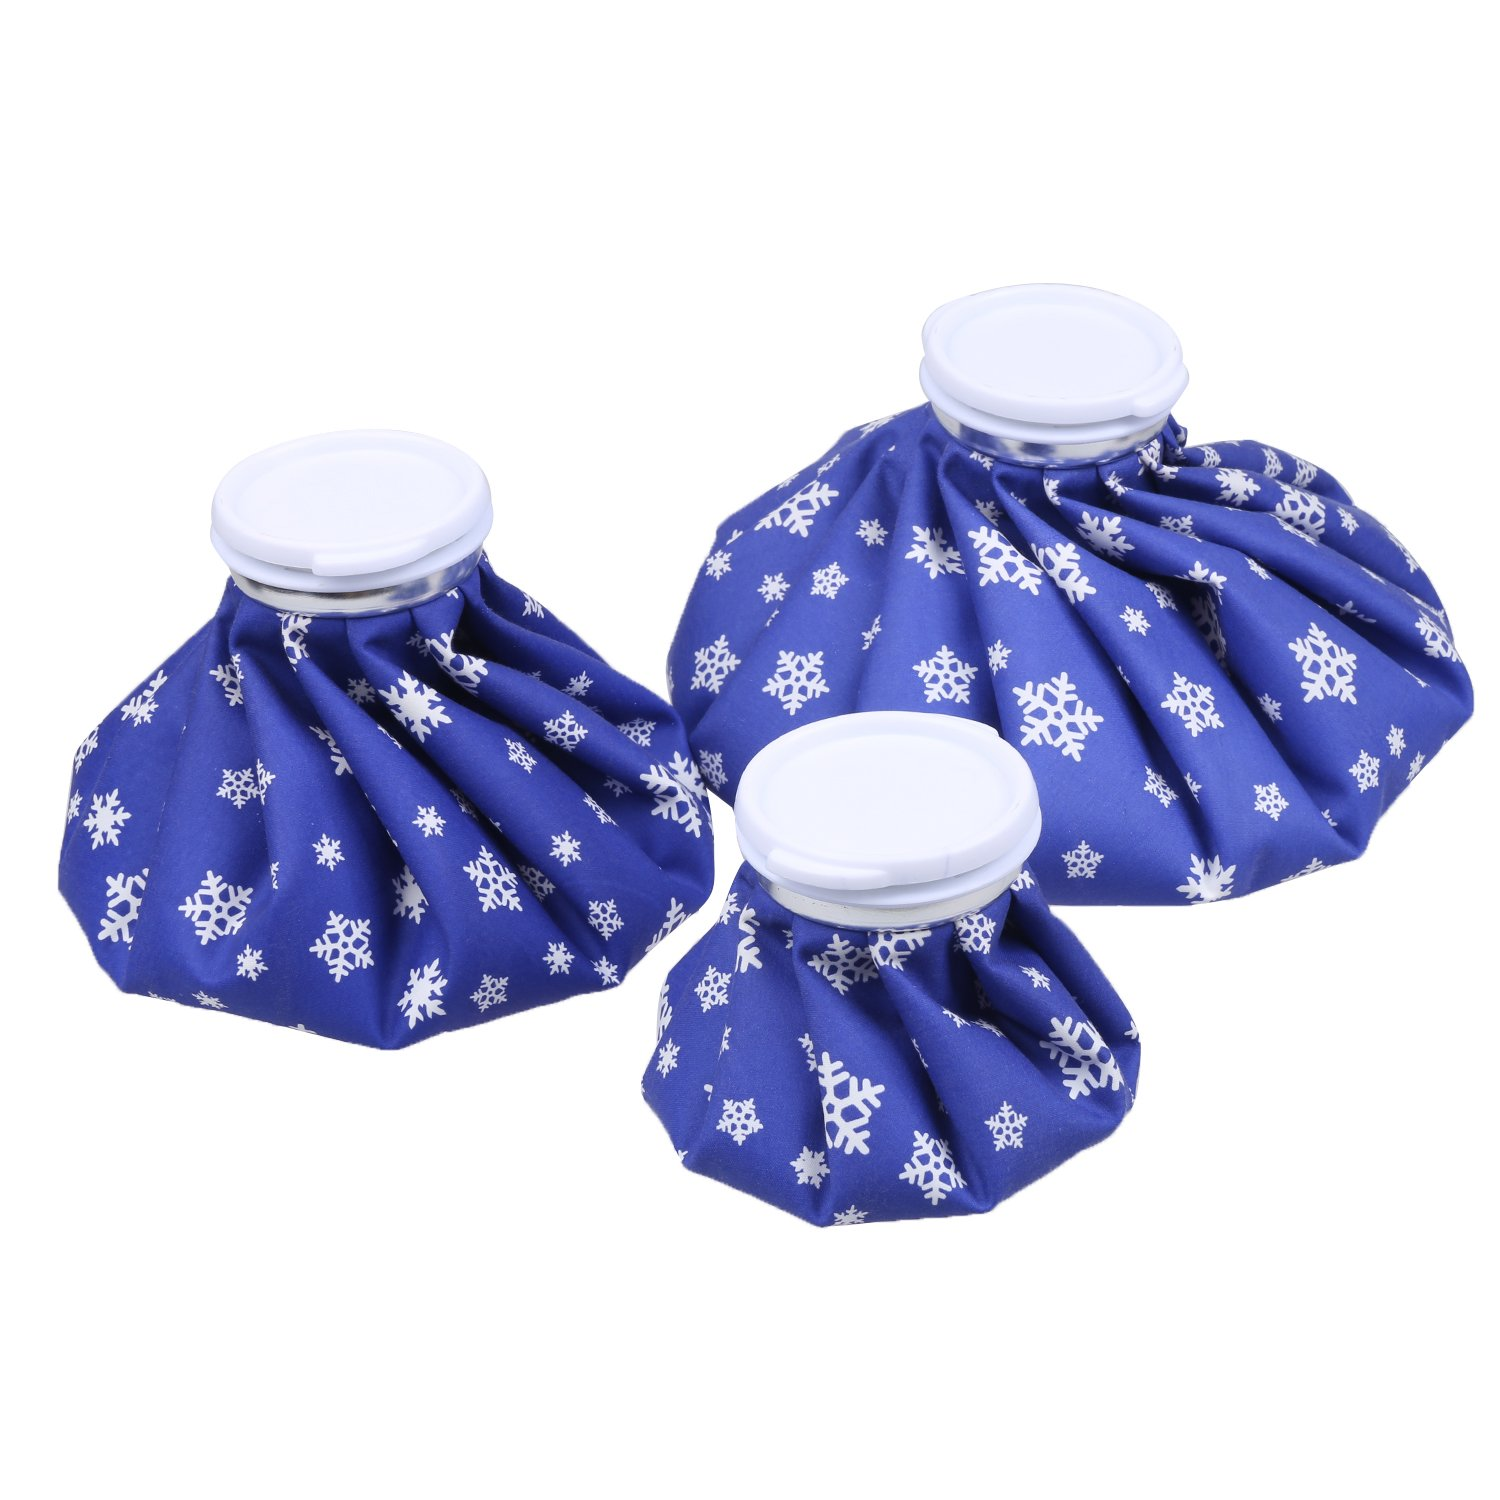 NEWSTYLE Ice Bag, 3 Pack[6'', 9'' &11'' ] Hot And Cold Reusable Ice Bag,Relief Heat Pack Sports Injury Reusable First Aid for Knee Head Leg(Deep Blue Snowflake) by NEWSTYLE